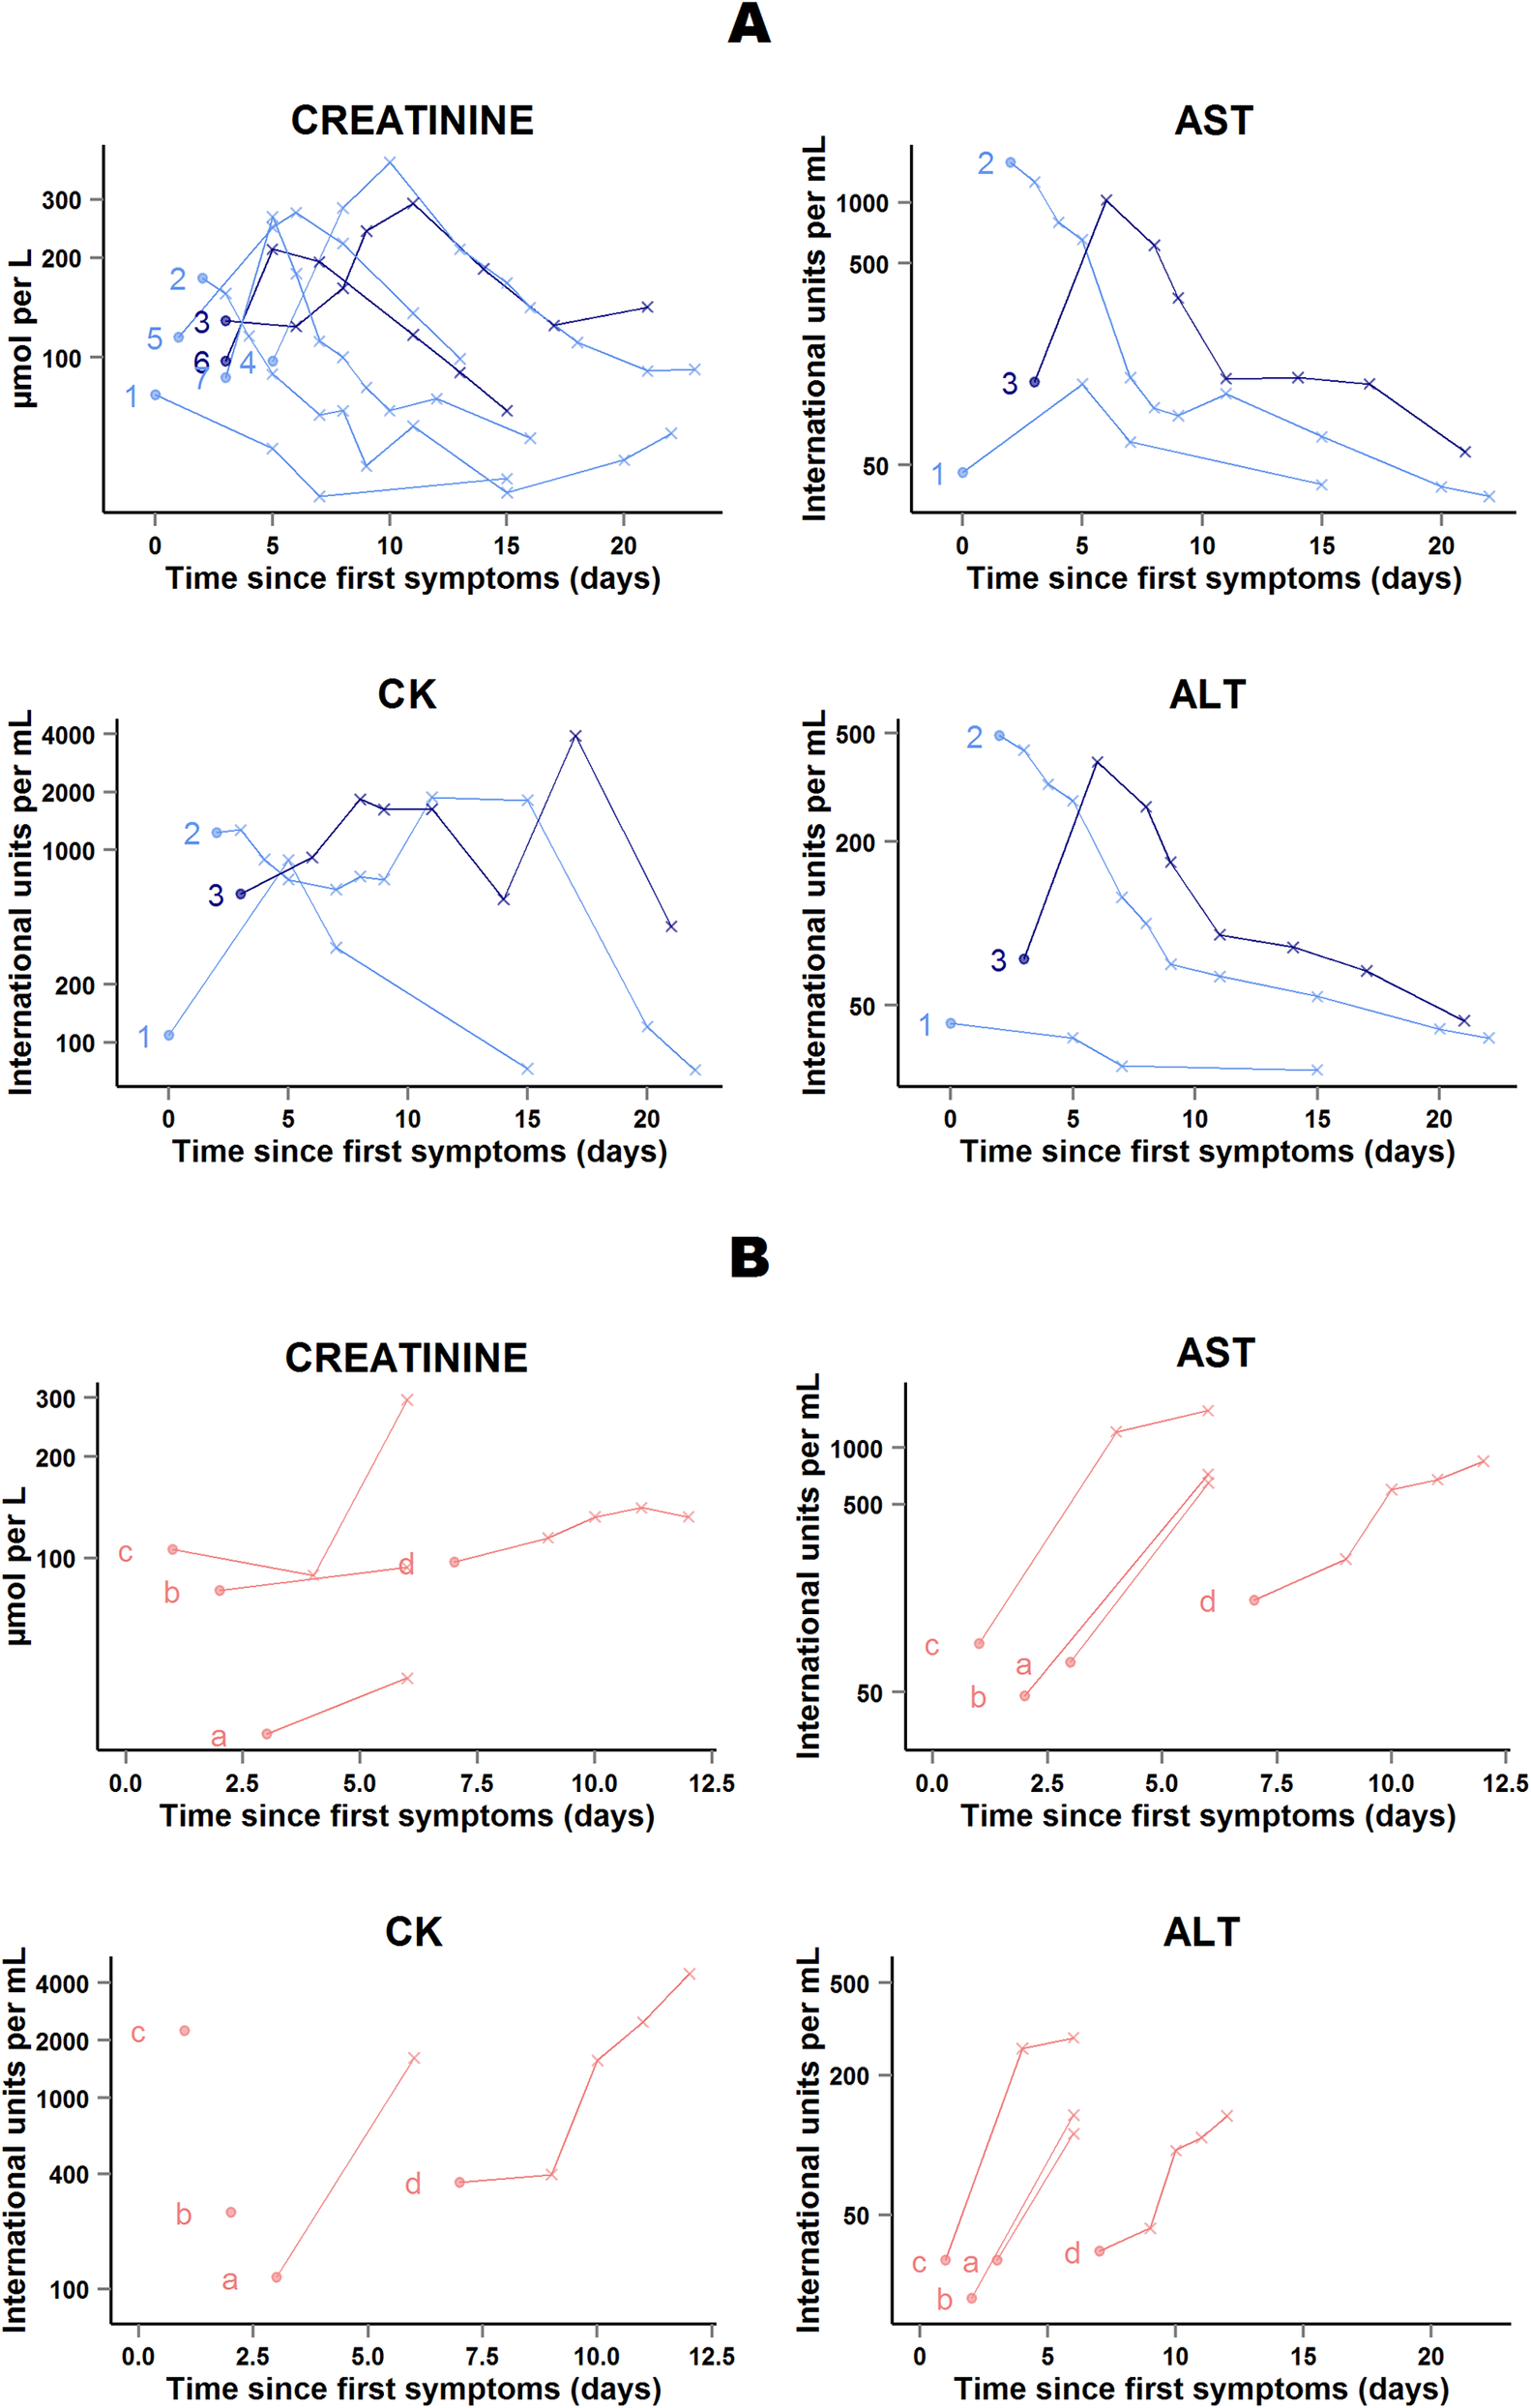 JIKI trial: evolution of serum creatinine, transaminases, and creatine phosphokinase in the 11 adolescents and adults who had worsening in at least one biochemical parameter on favipiravir.